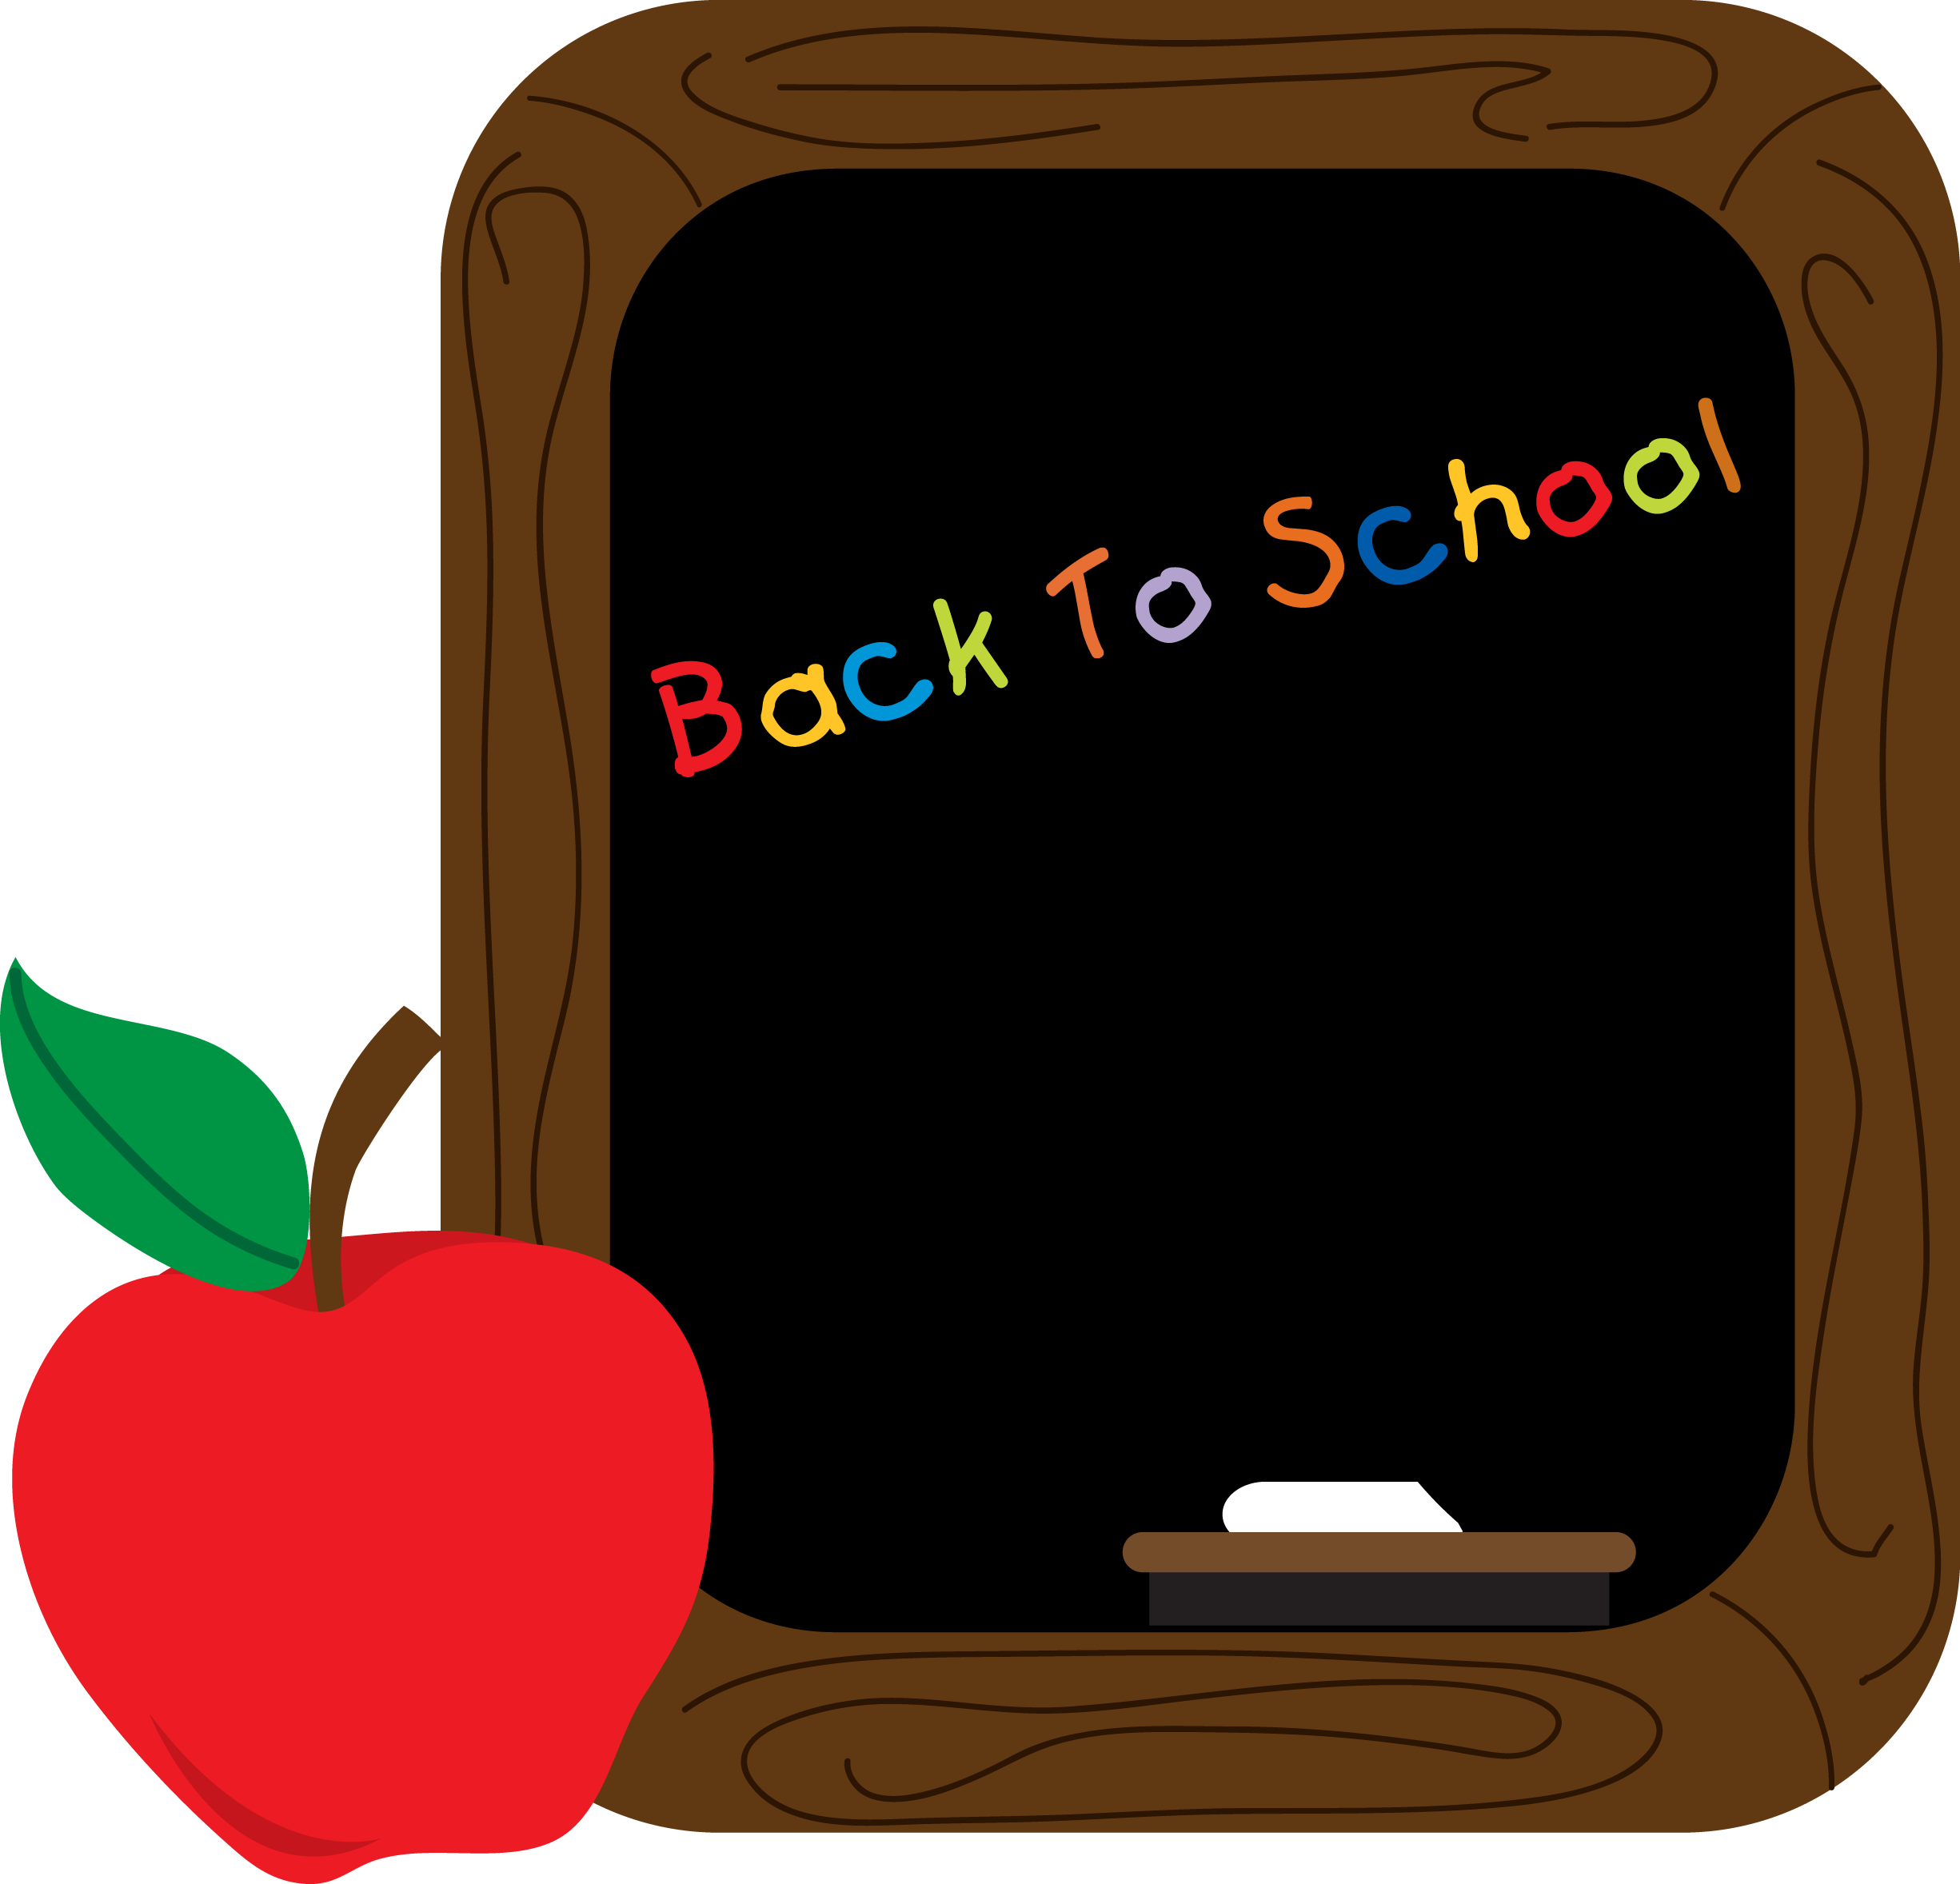 Abc chalkboard clip art at lakeshore learning - dbclipart.com clipart black and white download